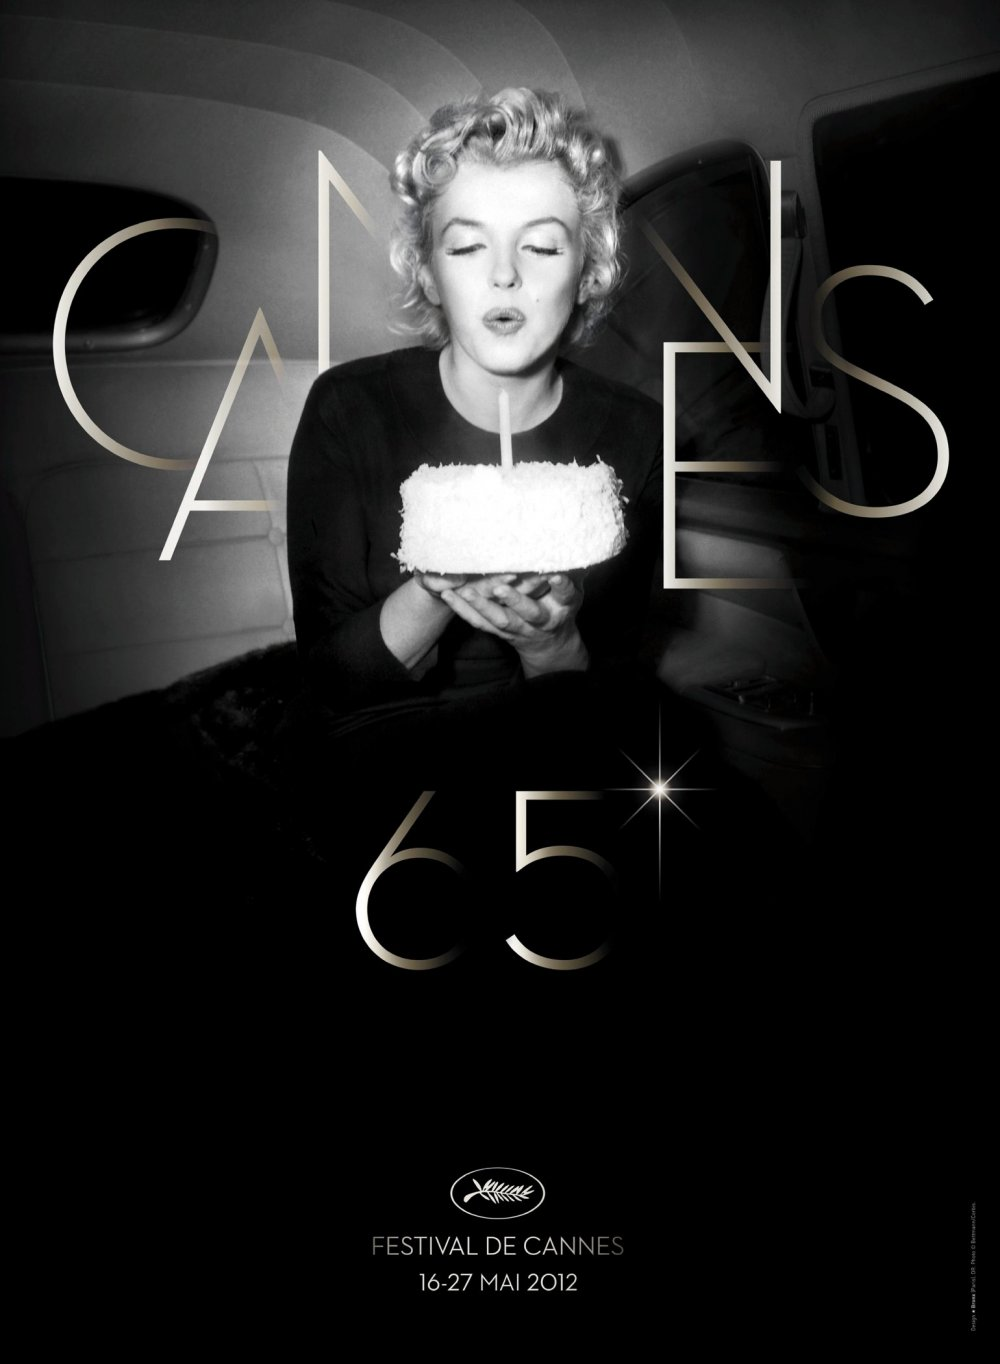 The Festival de Cannes's 2012 poster